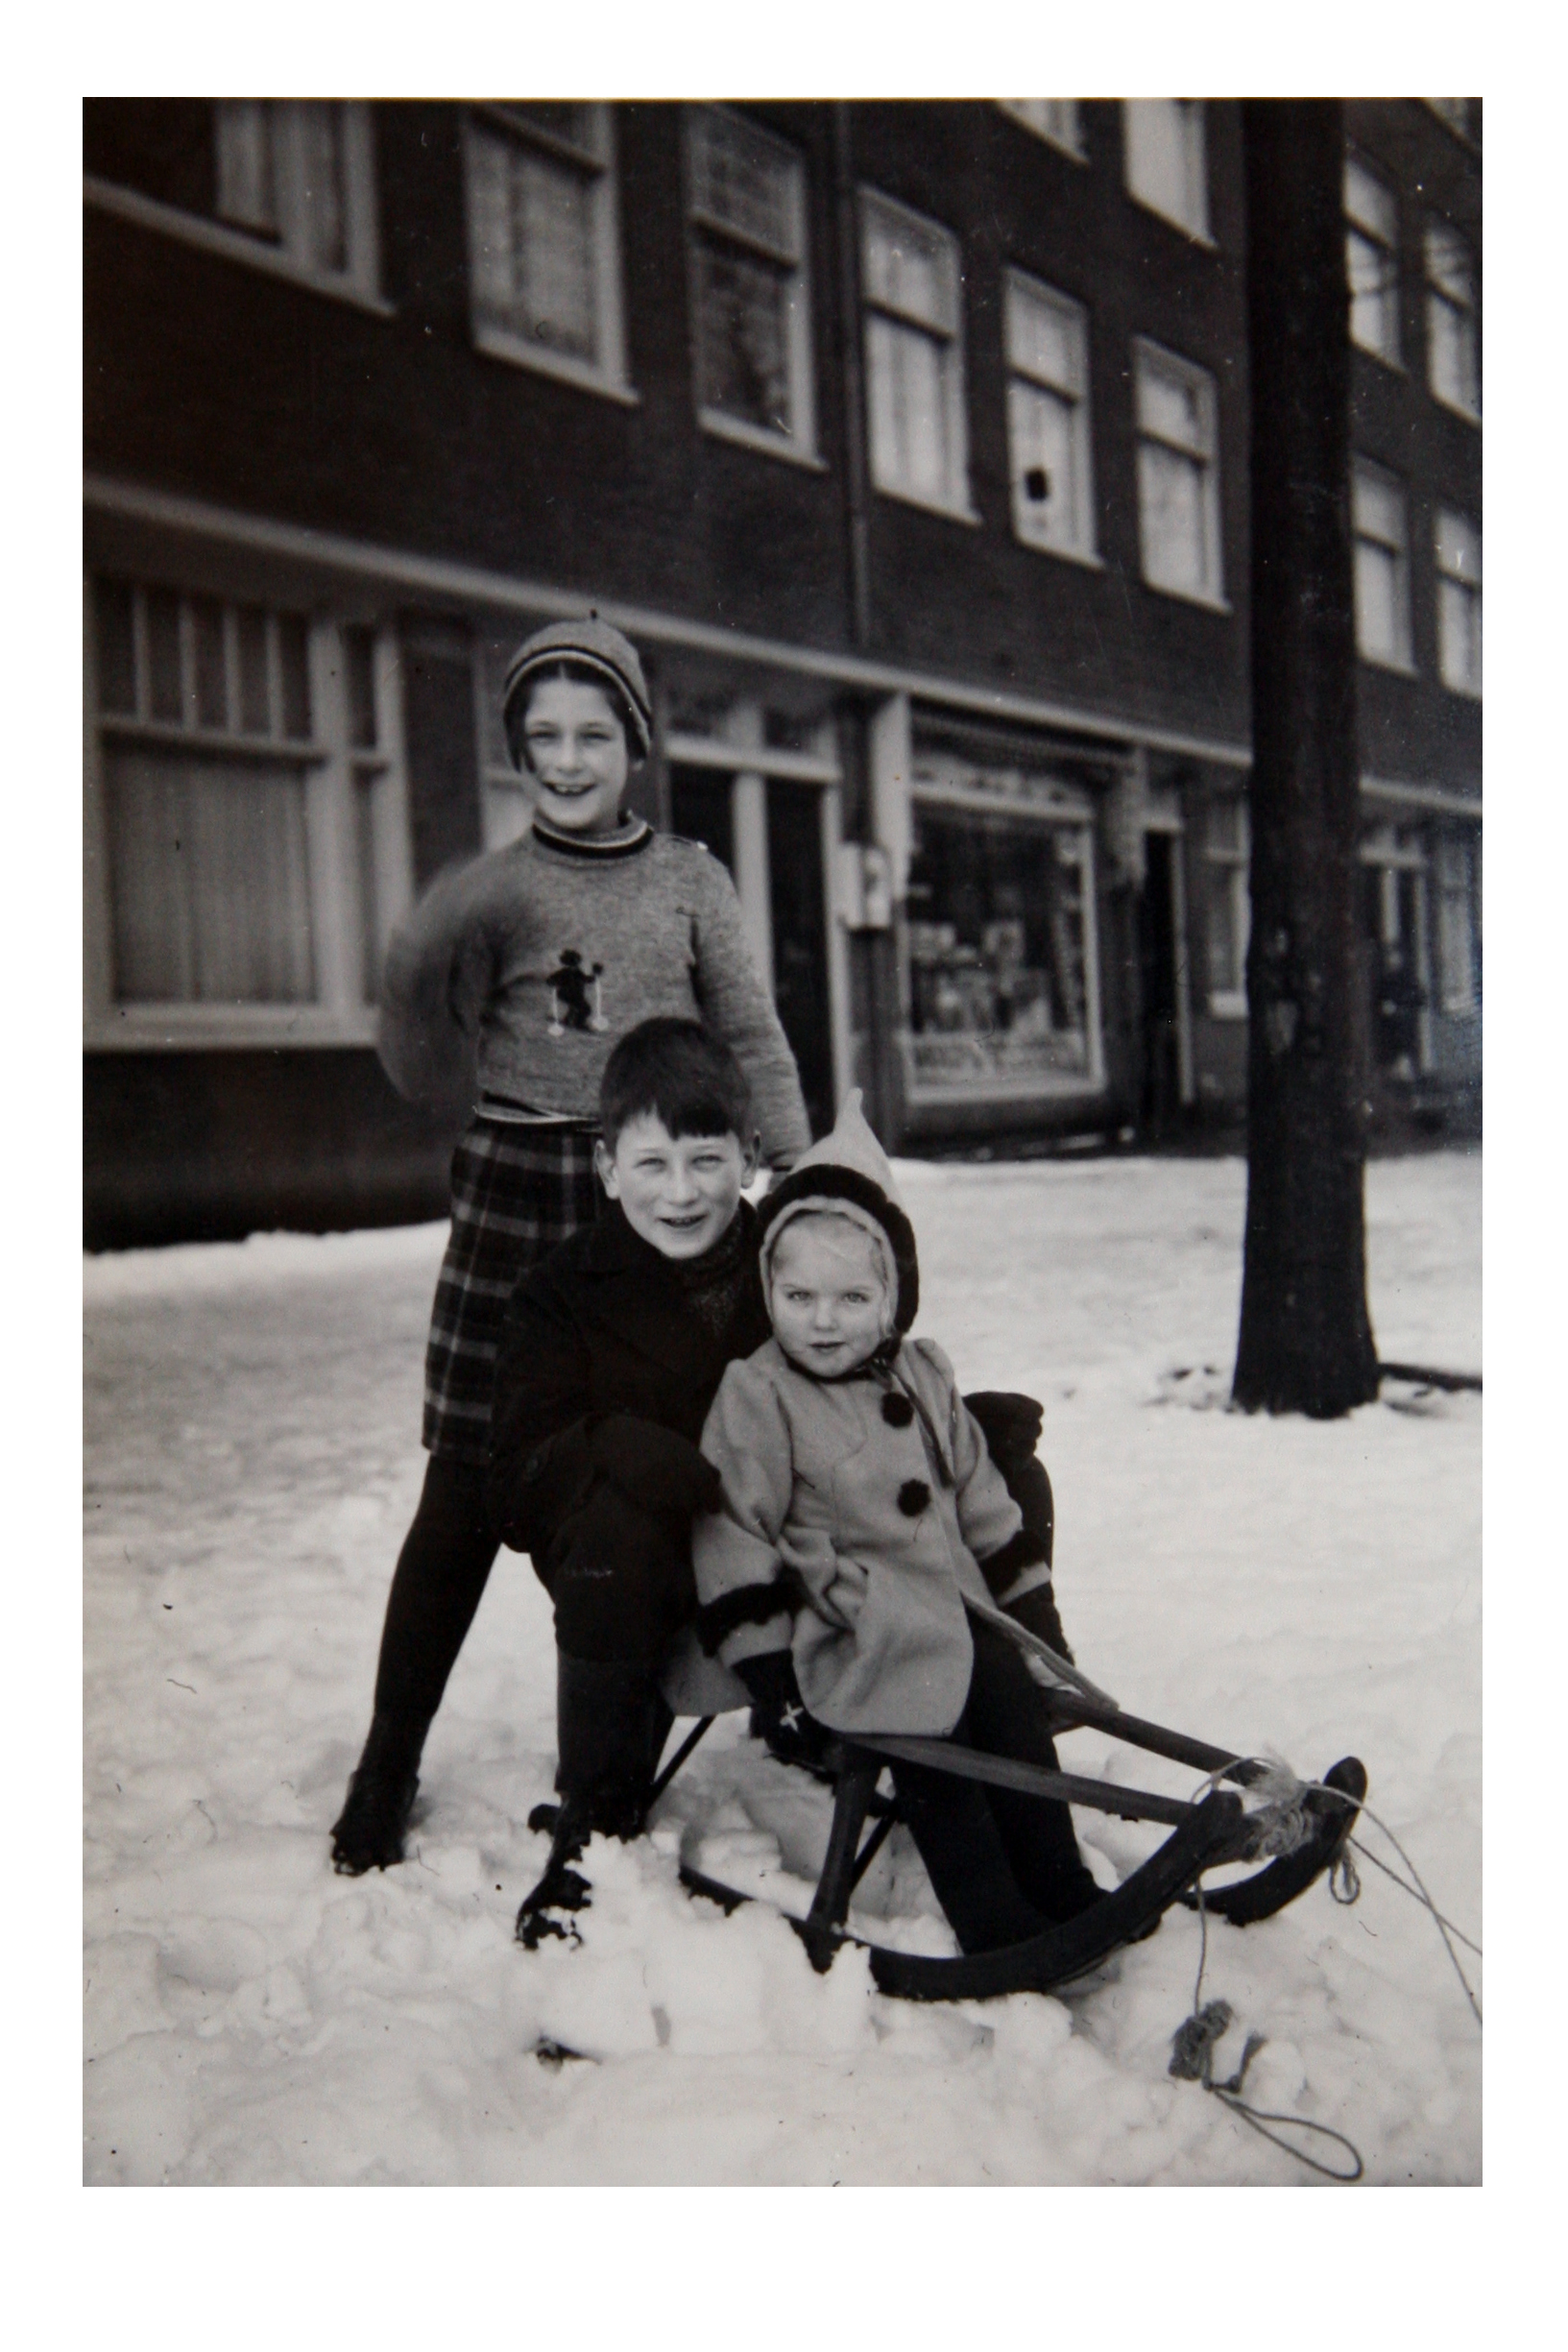 Irene, Werner, and cousin sledding along the canals of Amsterdam, circa 1941.